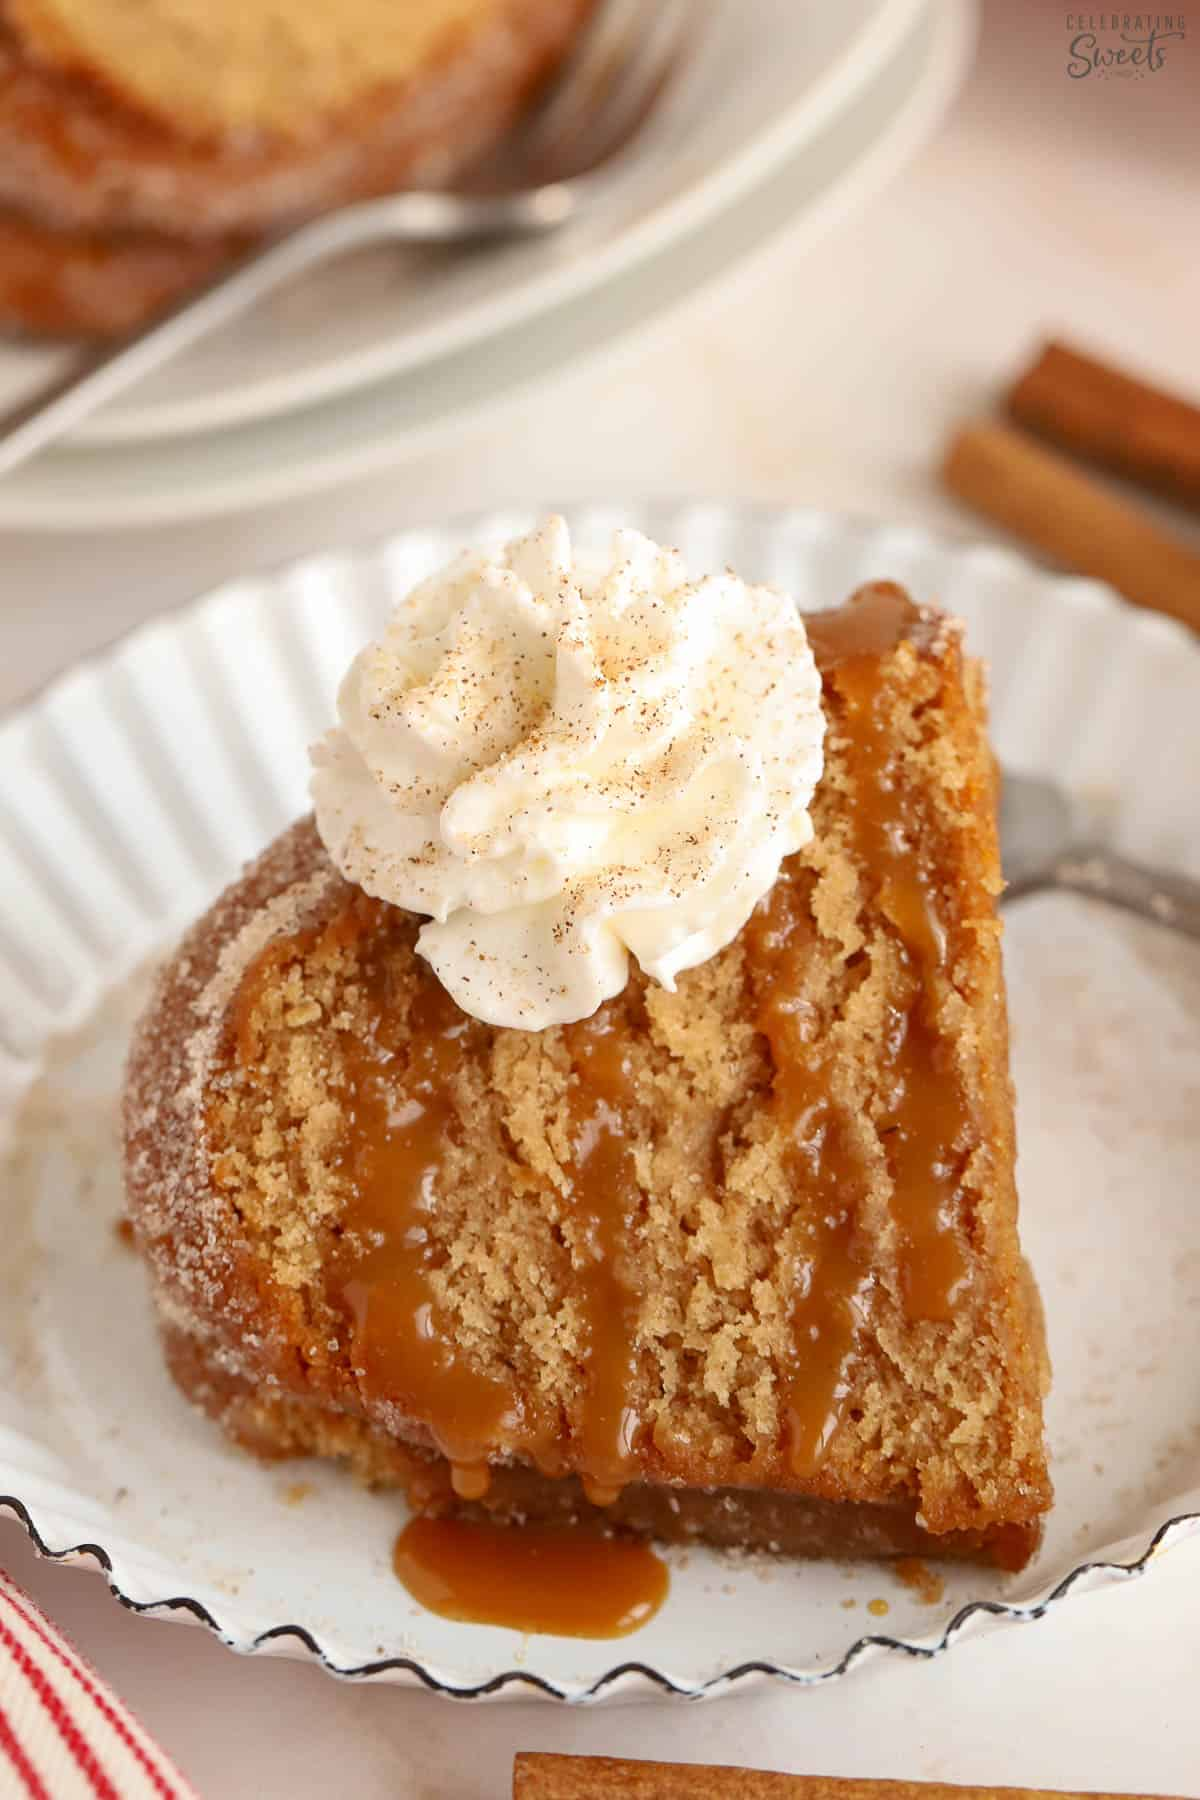 Slice of apple cider donut cake drizzled with caramel sauce and topped with whipped cream.